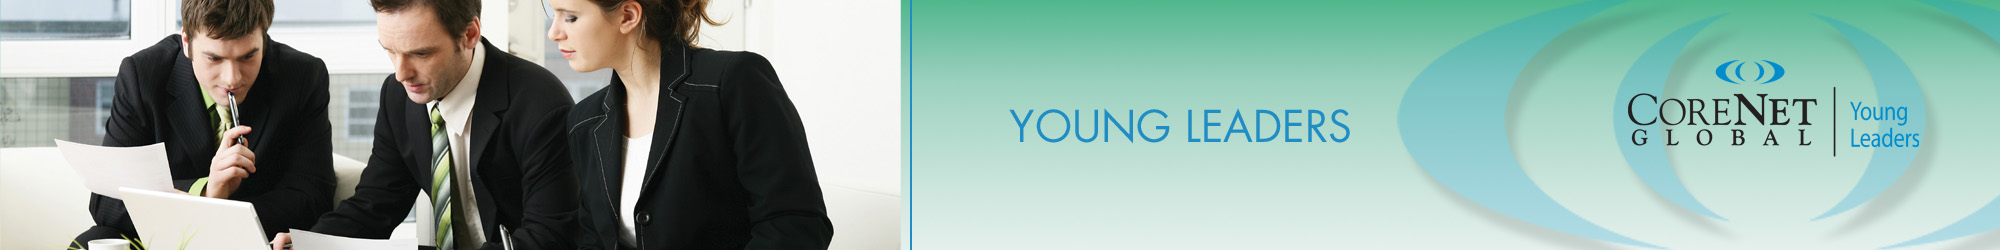 Young Leader Banner